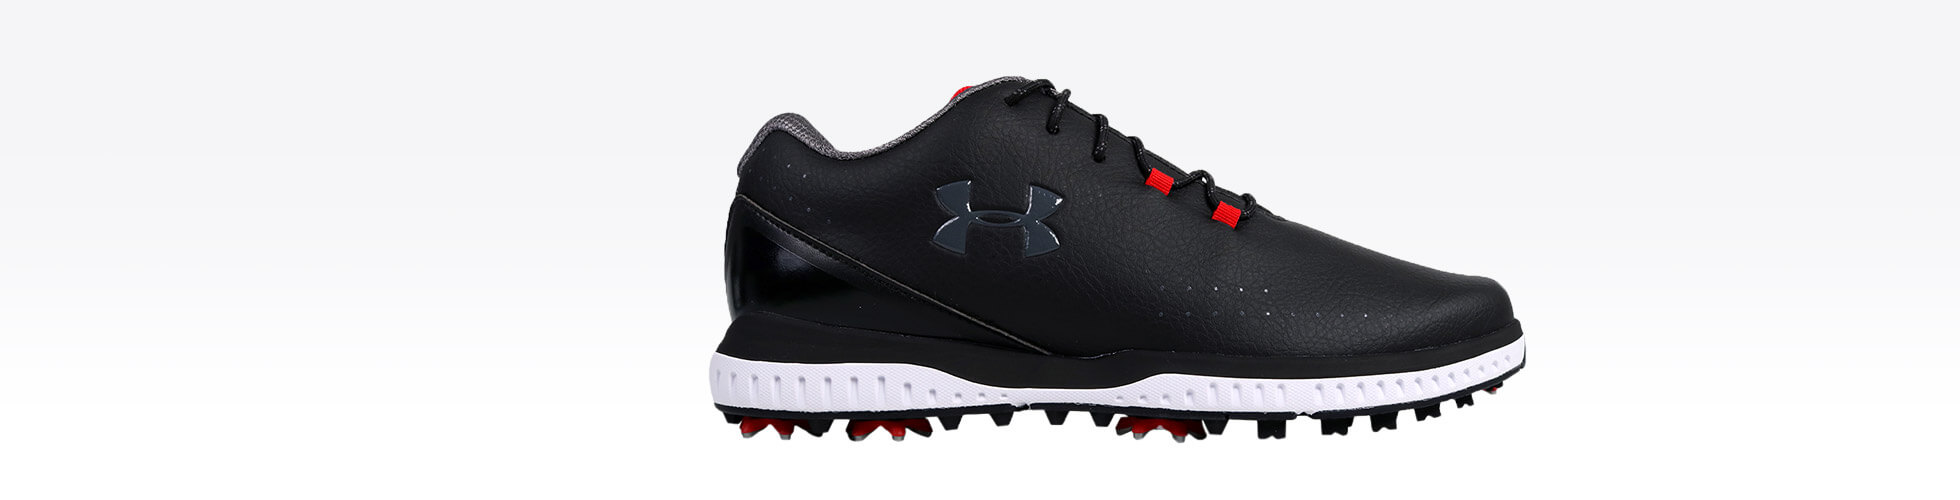 Under Armour RST Medal Shoe